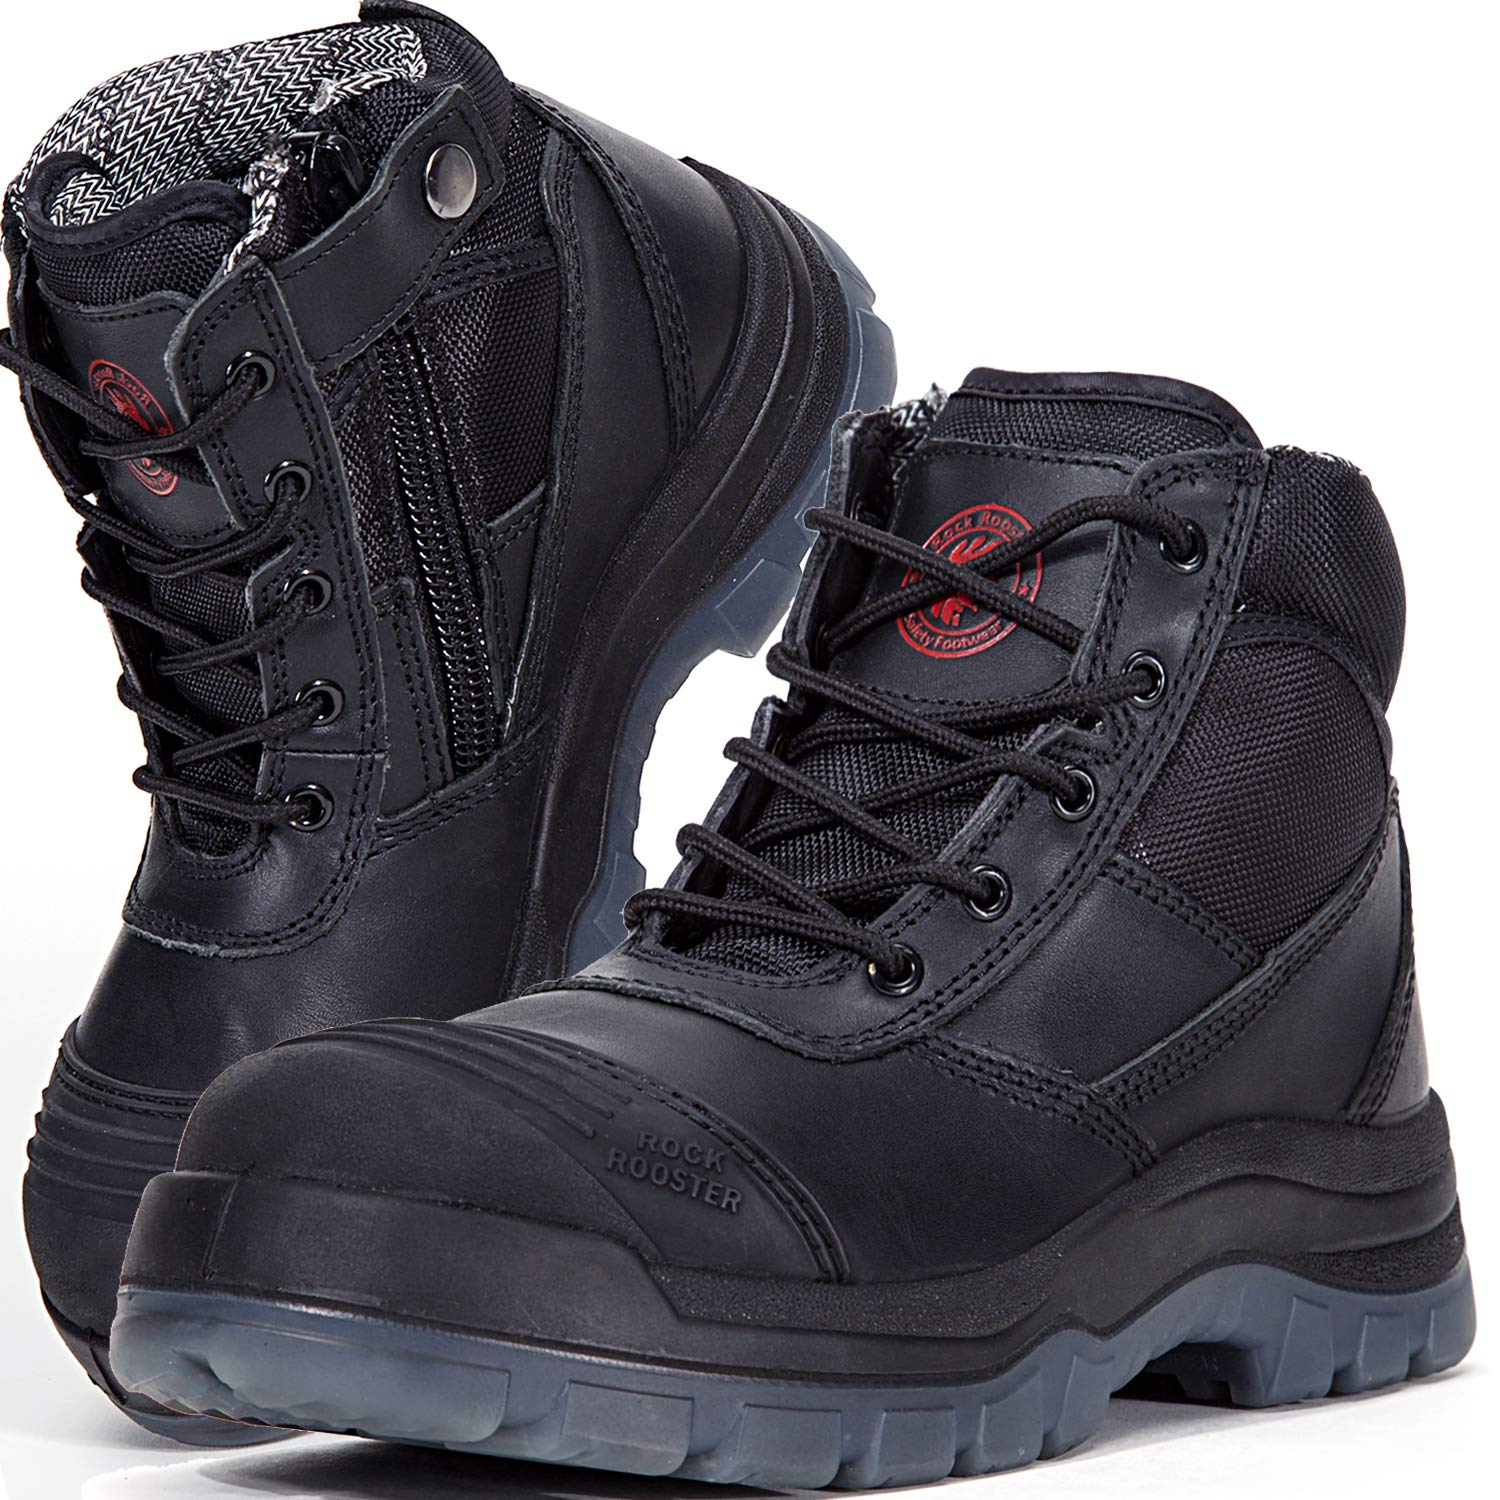 6ddc51b139f ROCKROOSTER Men's Work Boots Waterproof, Steel Toe, Antistatic, Water  Resistant Leather Shoes, AK050